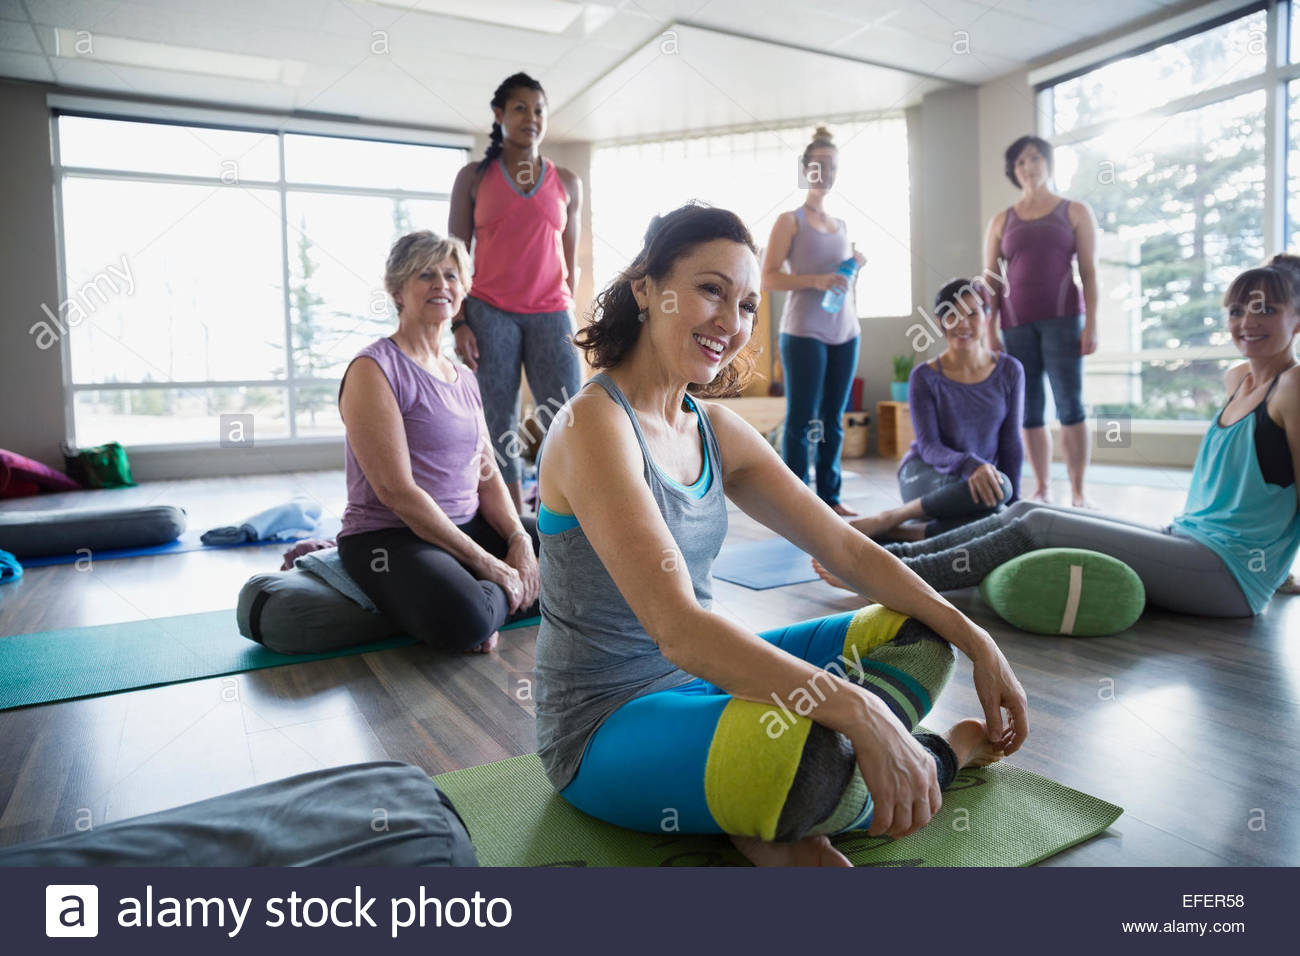 Smiling women in restorative yoga class - Stock Image